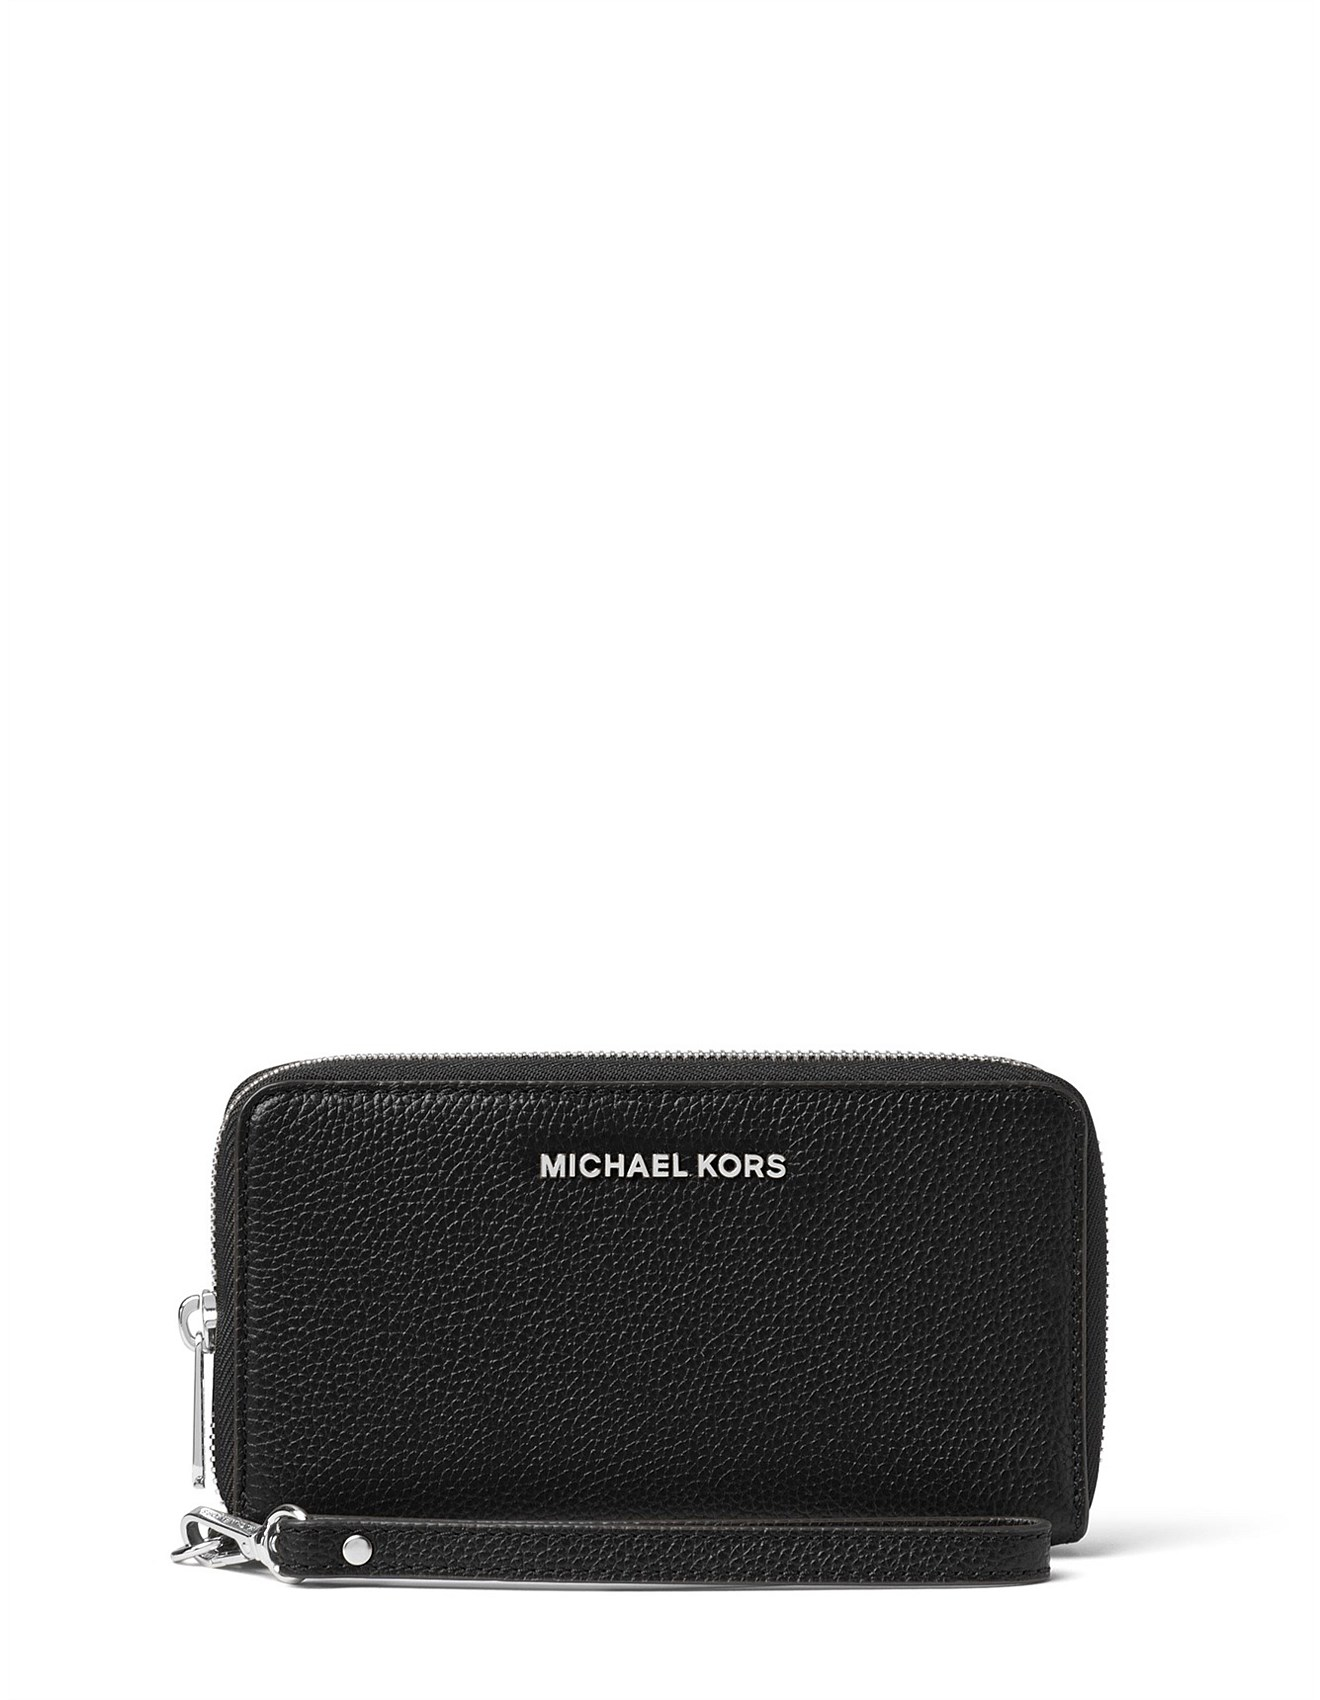 6bfaca14e971 Michael Kors | Handbags, Watches & More Online | David Jones ...